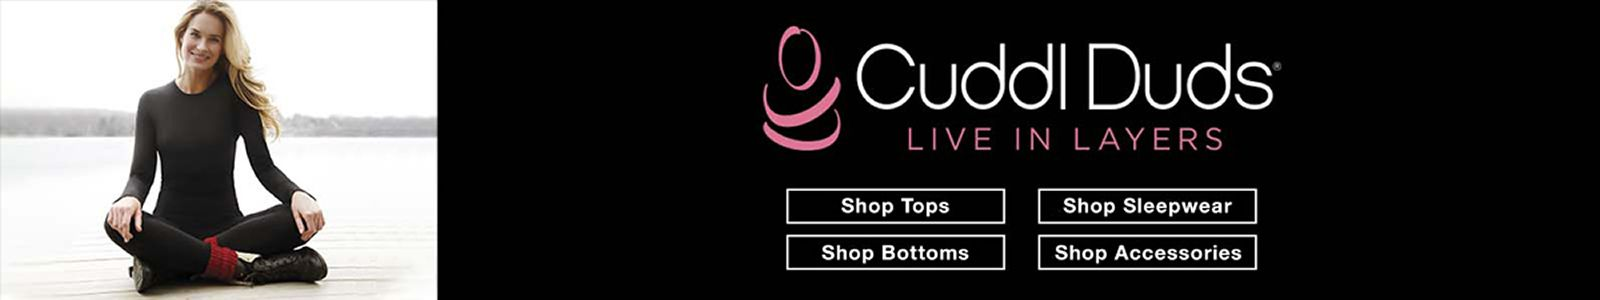 Cuddl Duds, Live in Layers, Shop Tops, Shop Sleepwear, Shop Bottoms, Shop Accessories